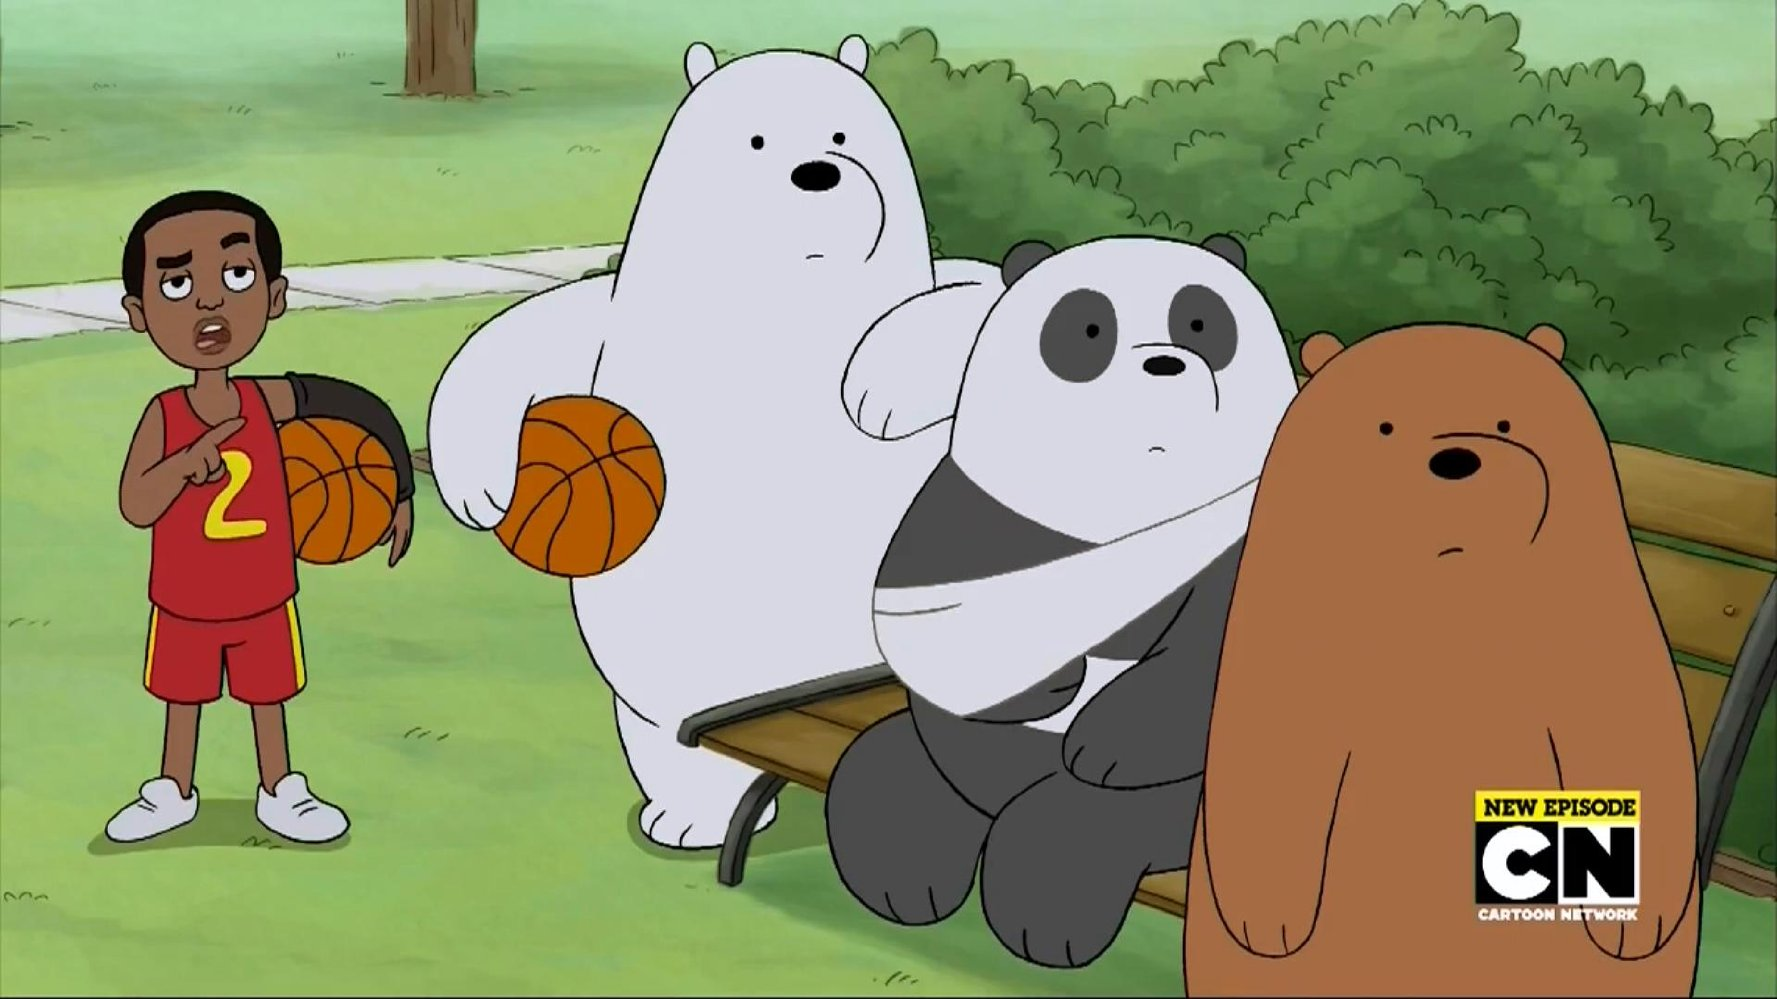 We Bare Bears - Season 3